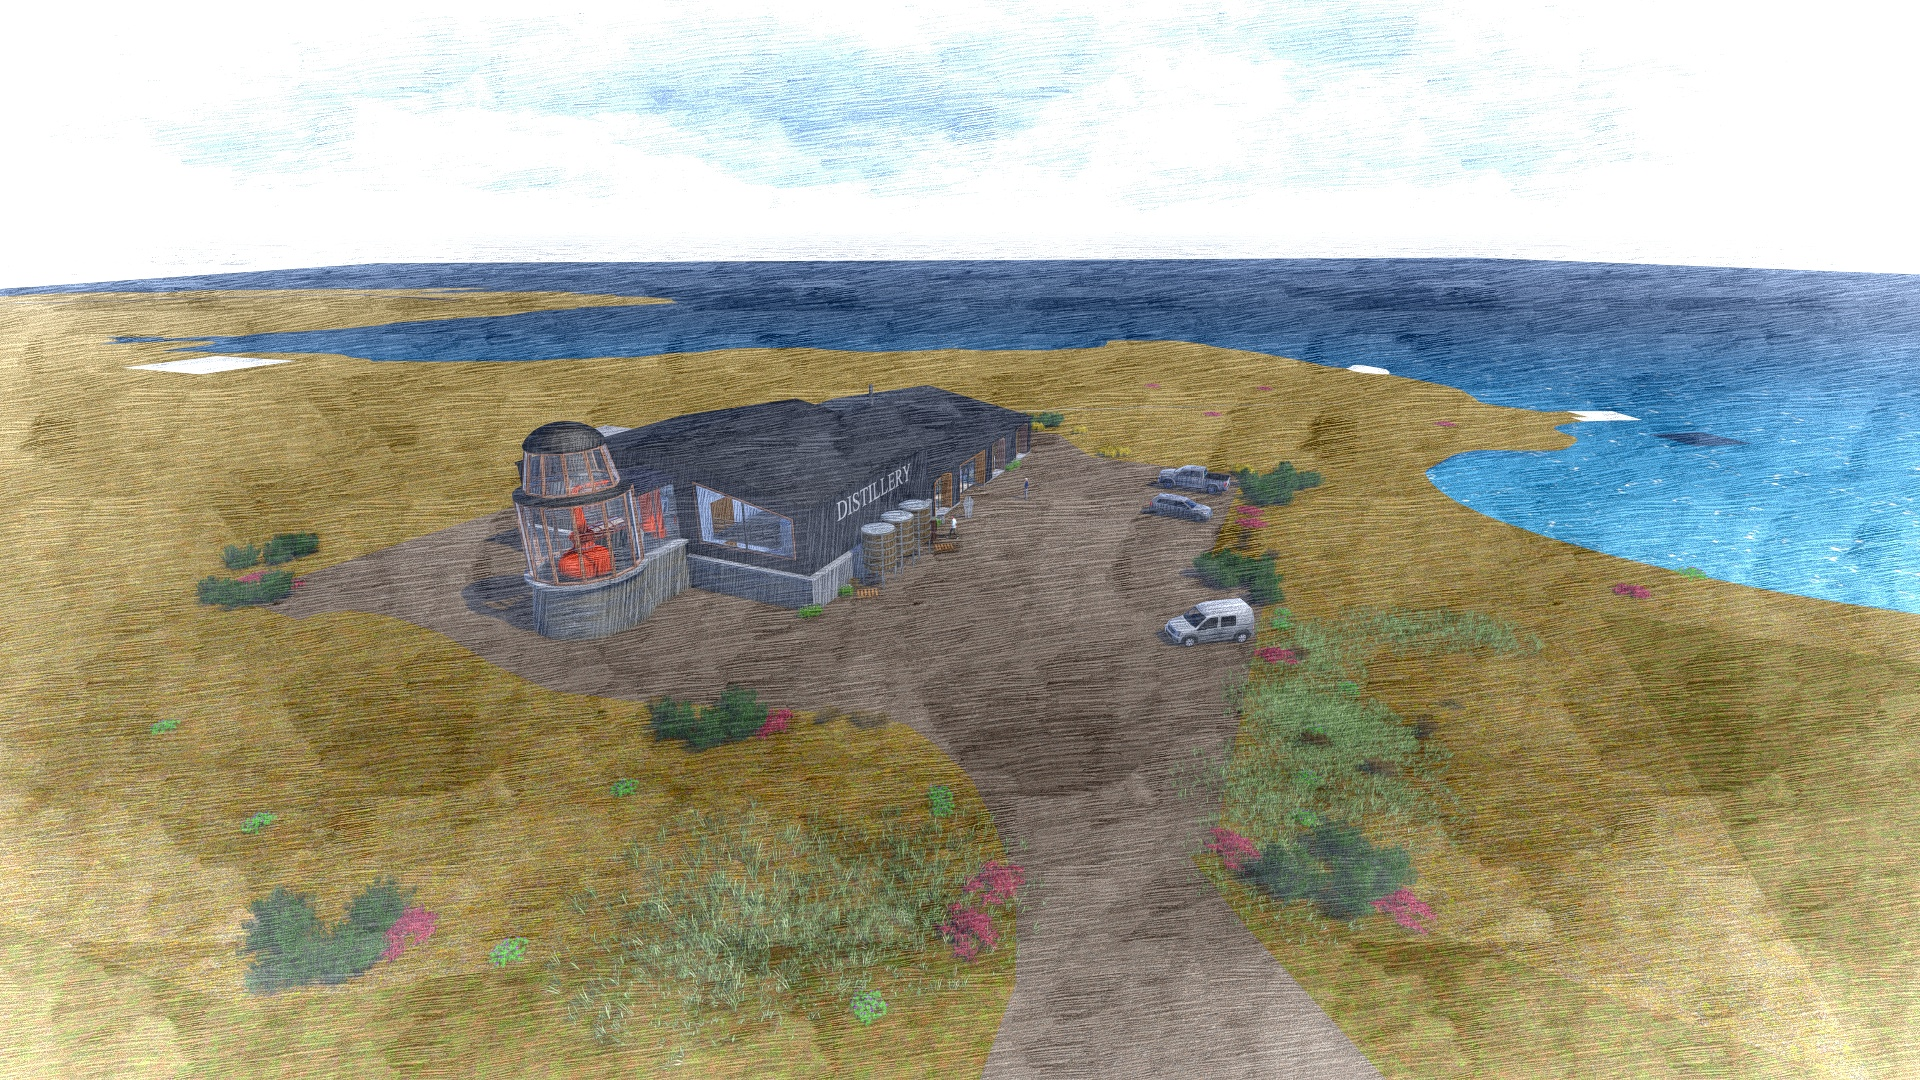 A bird's eye view of the distillery proposed in Gramsdale, Benbecula. submitted